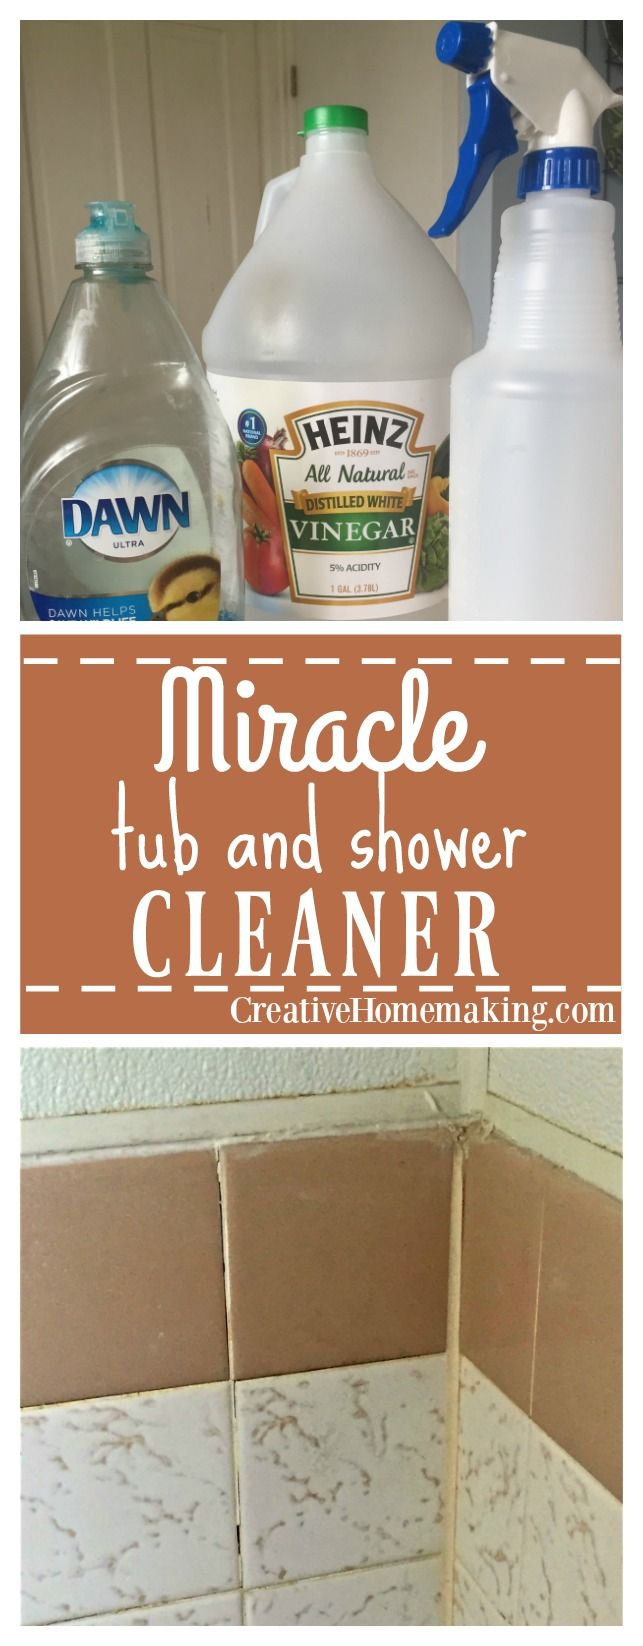 Miracle shower and tub cleaner bathtub cleaner dawn - Homemade bathroom cleaner with dawn ...